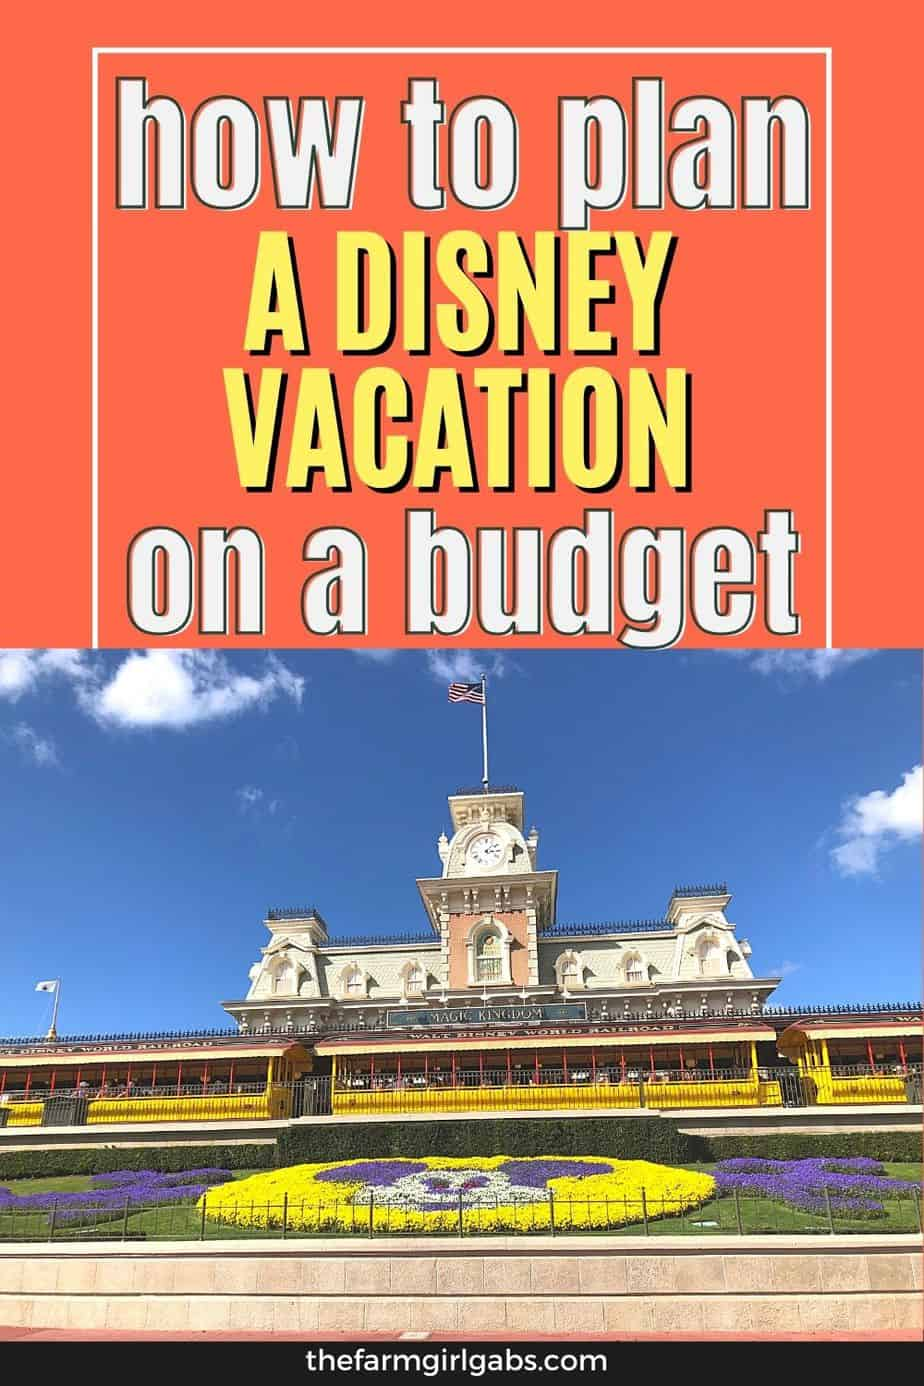 Walt Disney World can be overwhelming. From theme parks to water parks, there is so much to do and plan. If you are new to the Disney game, I have some helpful tips to help you save some money on your Walt Disney World Resort trip. Check out Disney World on a Budget: How to Plan a Trip That Doesn't Break the Bank. These Disney World Budgeting tips will help you plan an ecomonical Disney vacation.